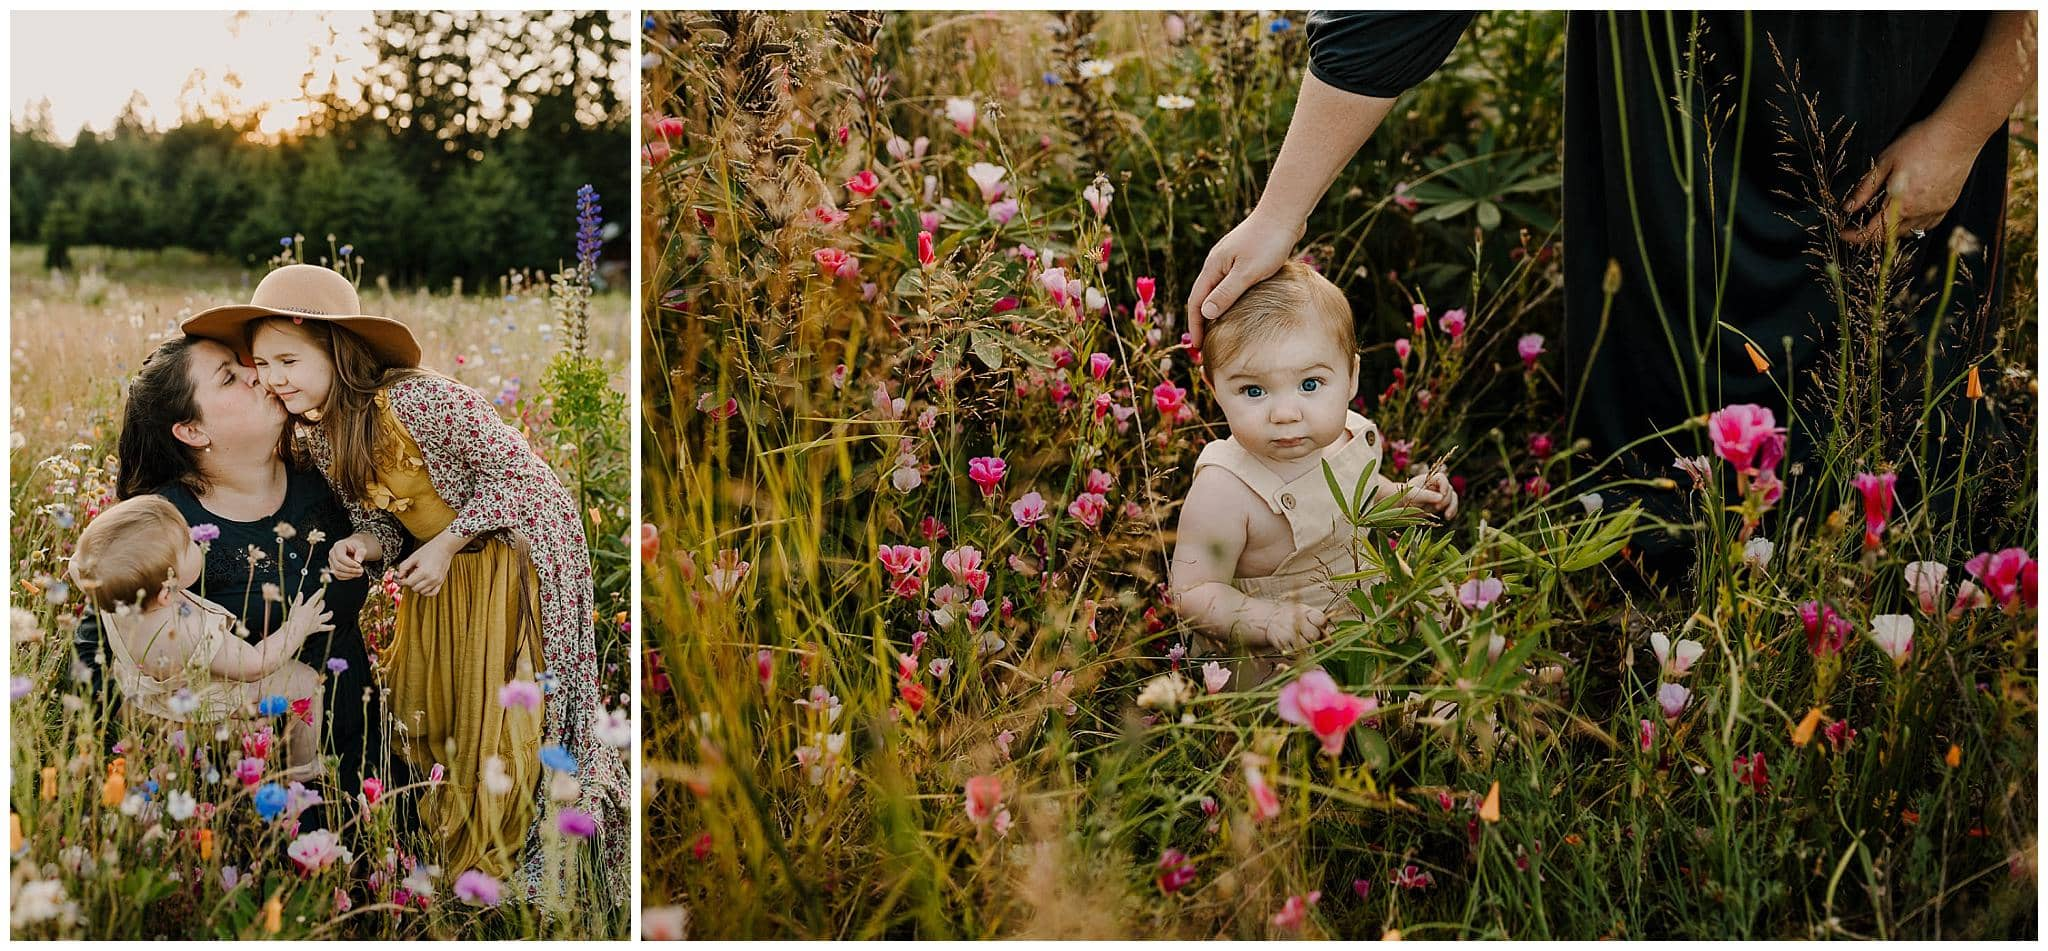 Mommy and me photo session in a field of spring flowers in portland